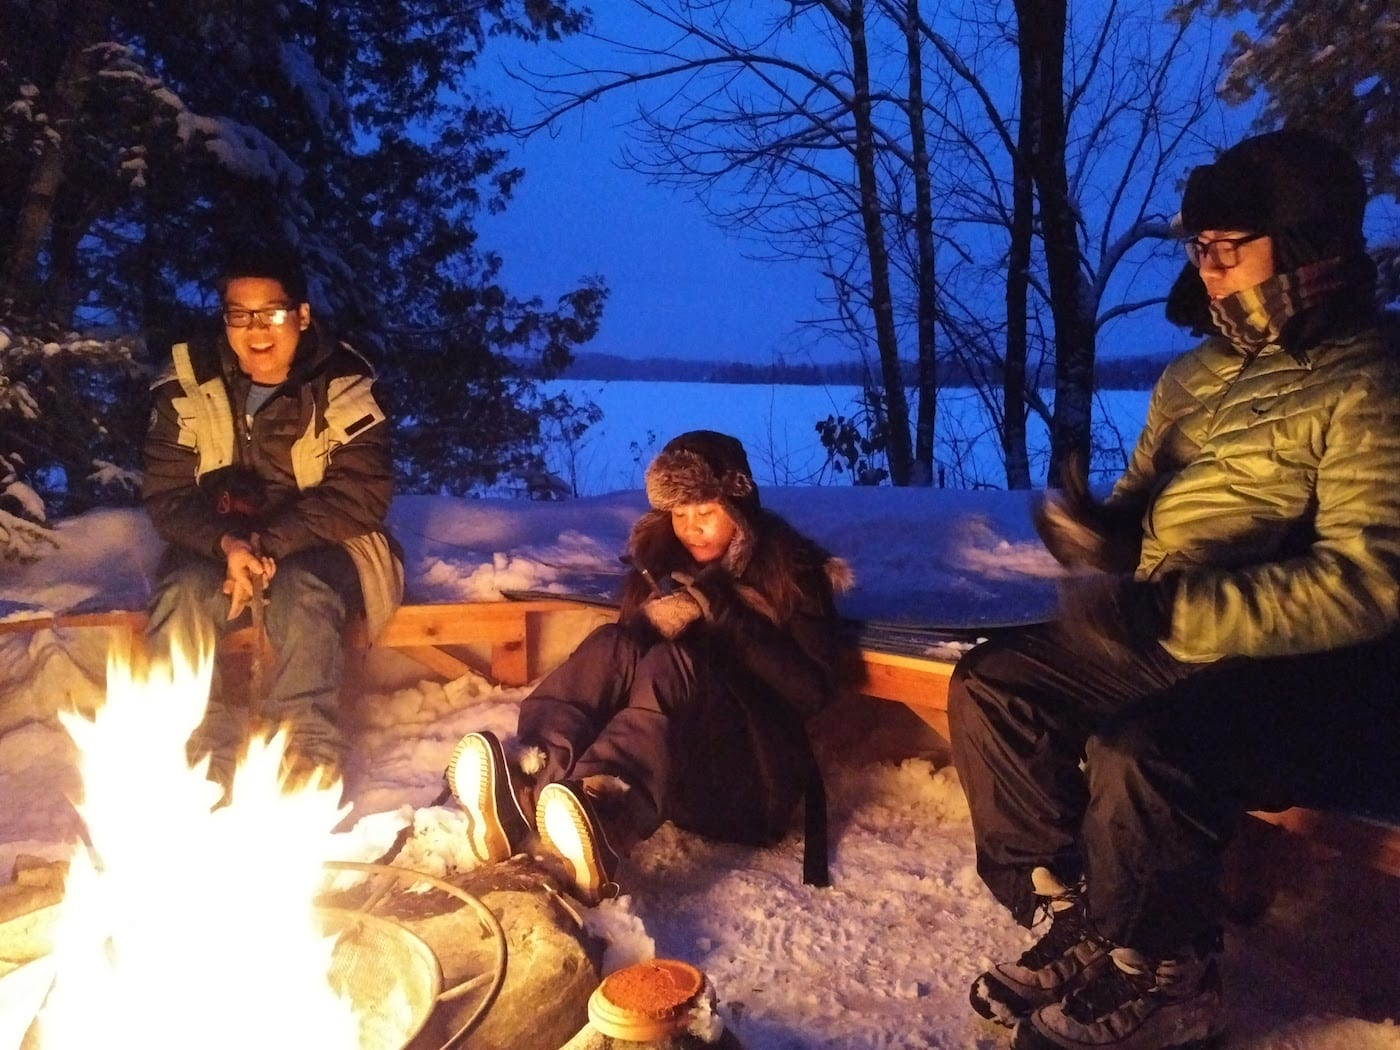 Three friends enjoying a winter campfire